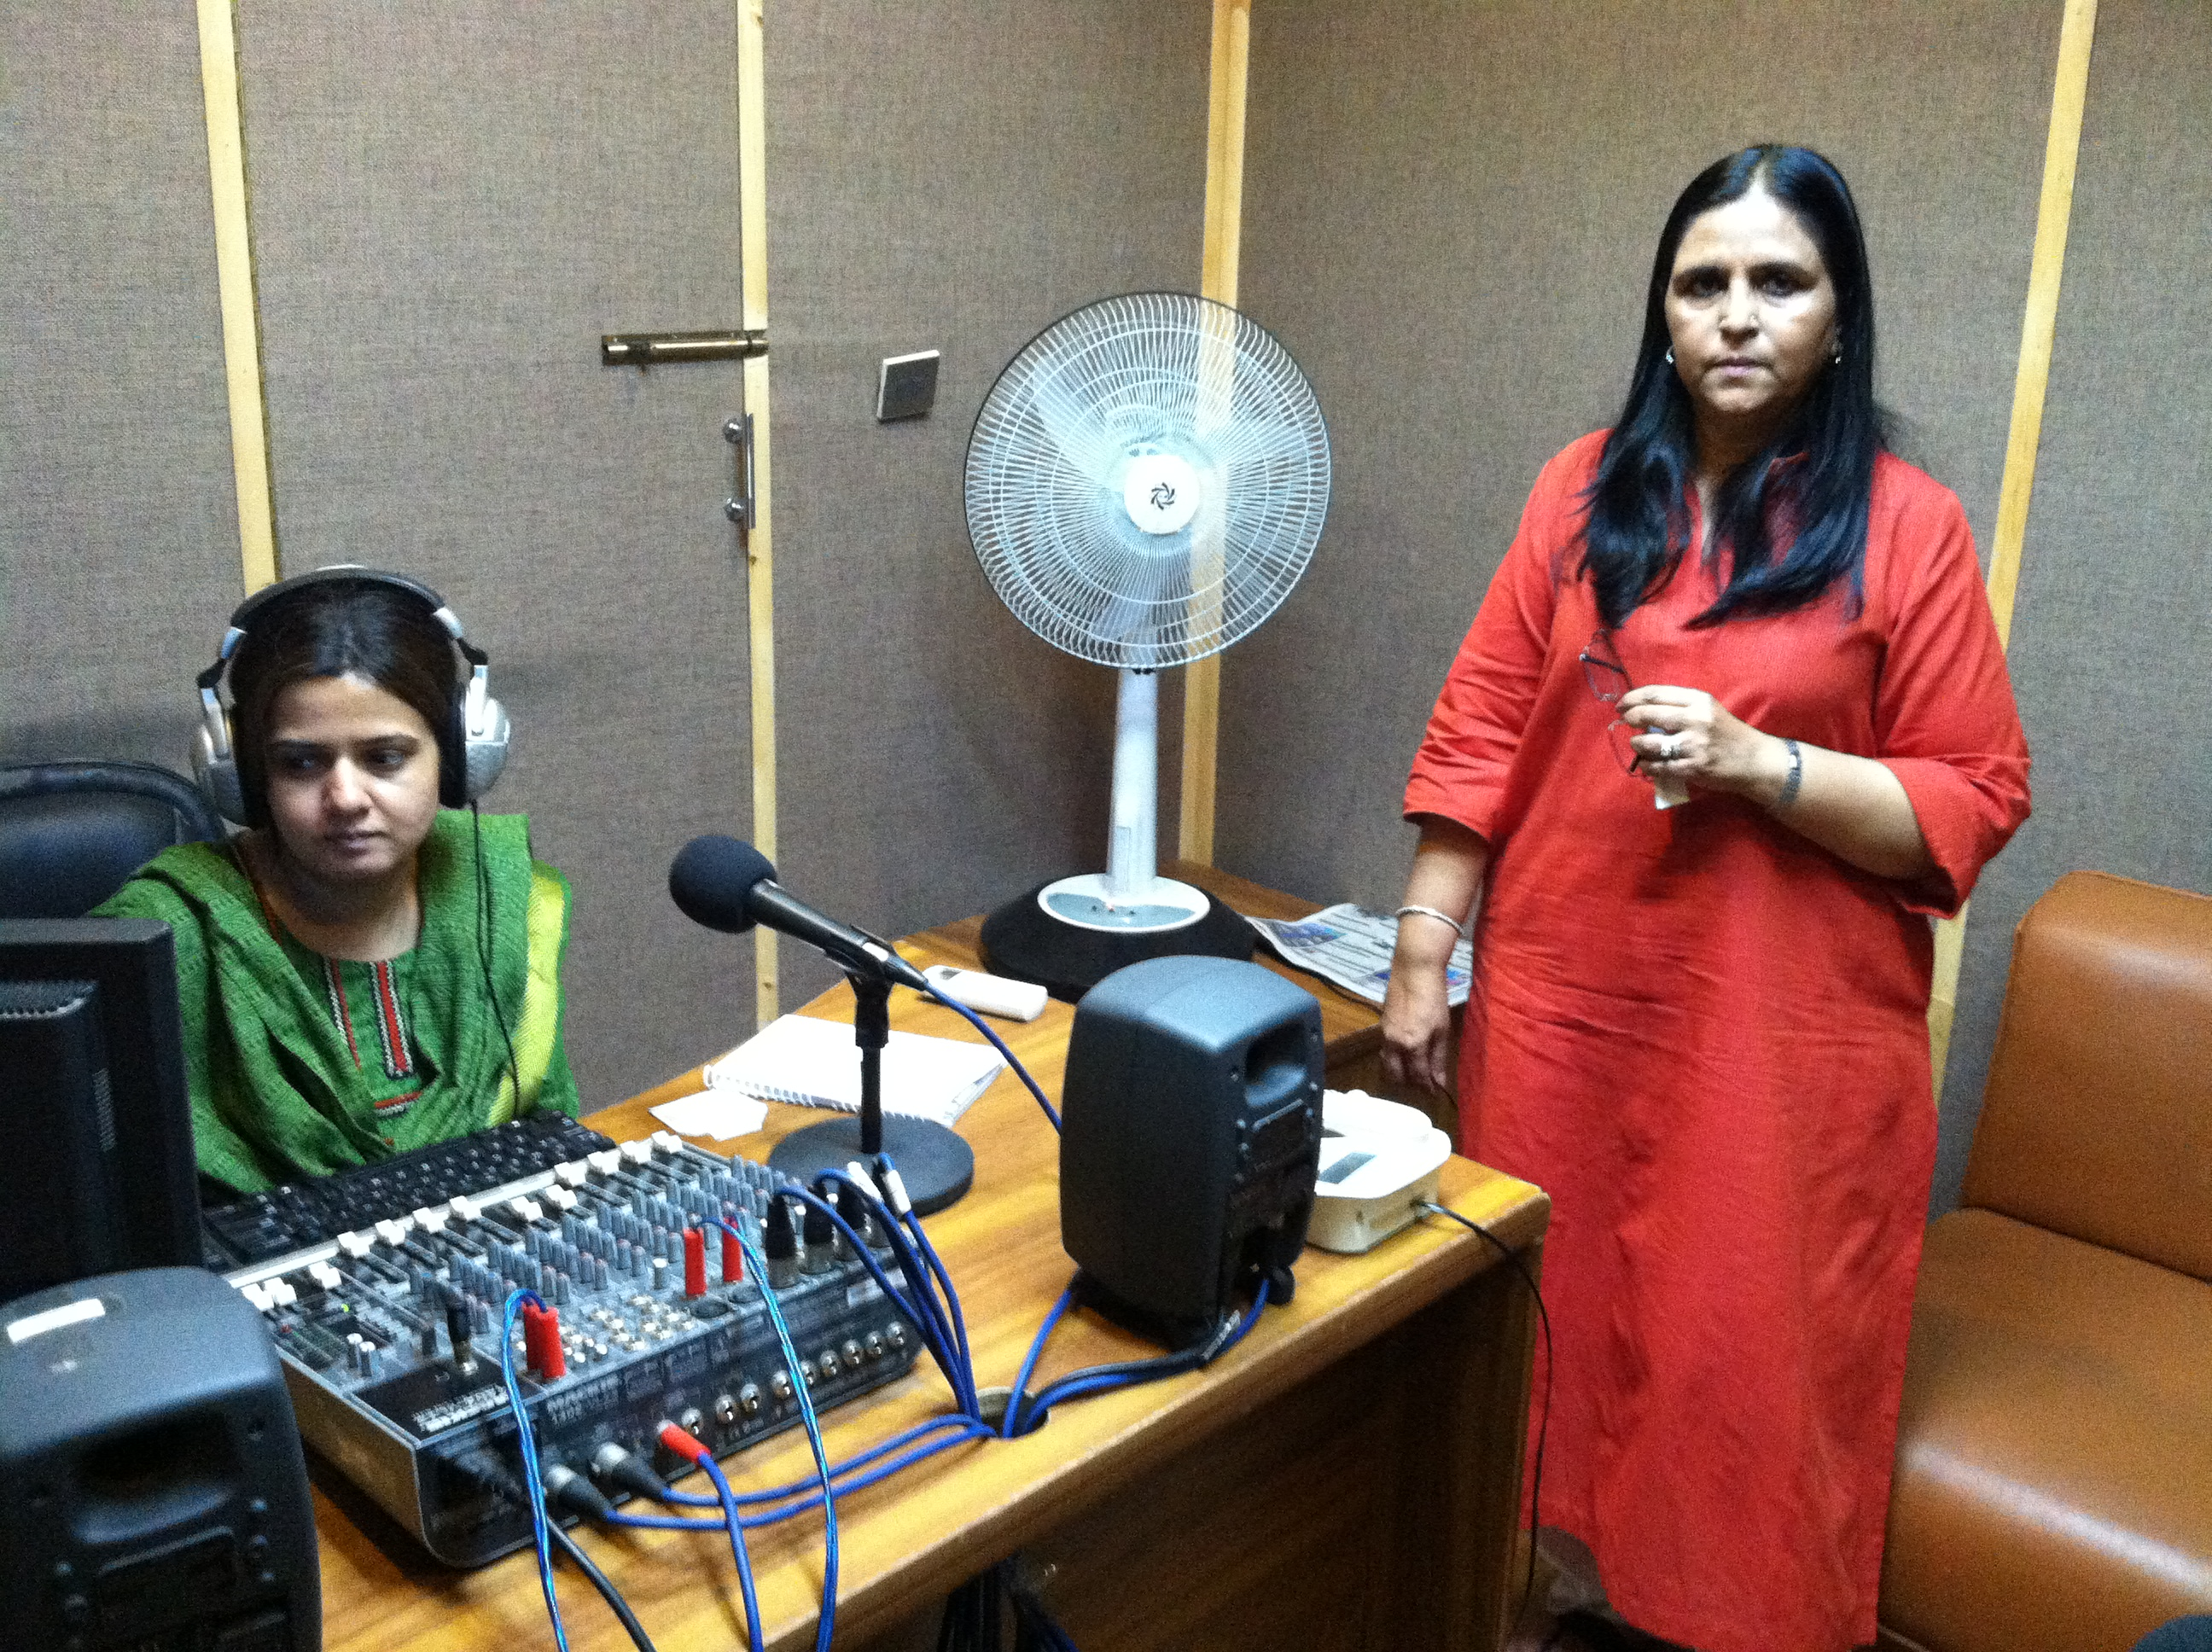 Uks radio producer Nida Naeem and director Tasneem Ahmar.